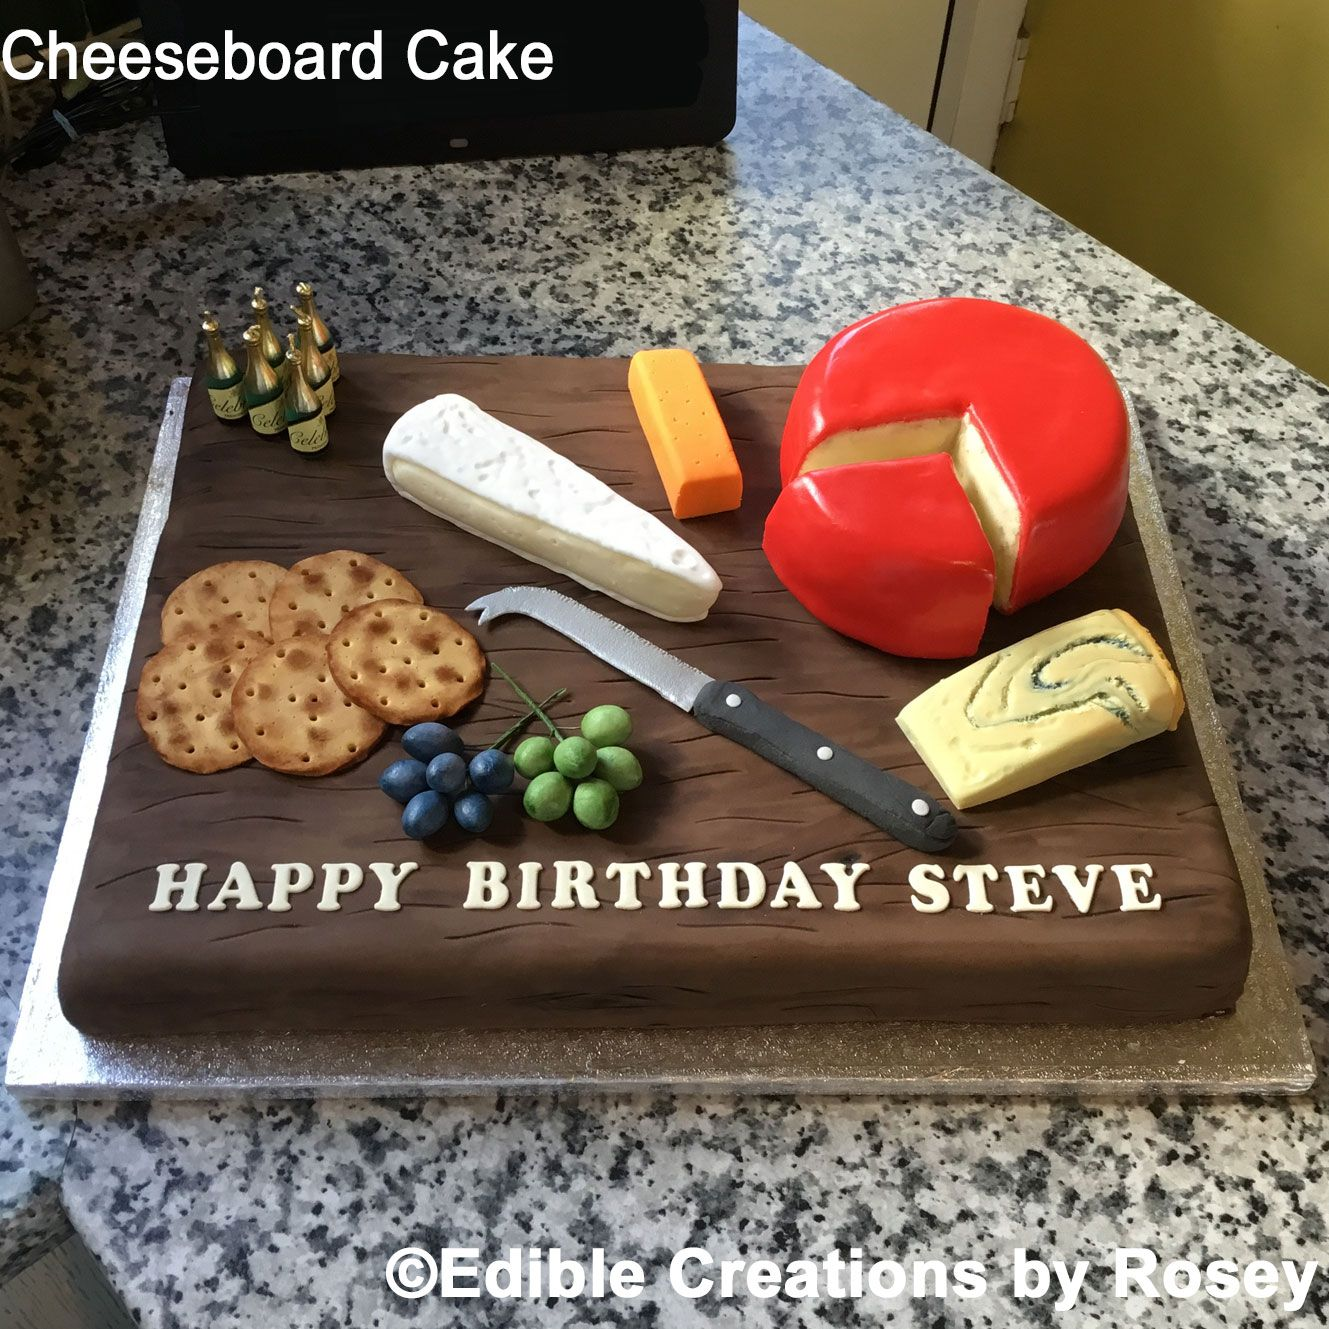 Cheeseboard Cake By Edible Creations By Rosey With Images